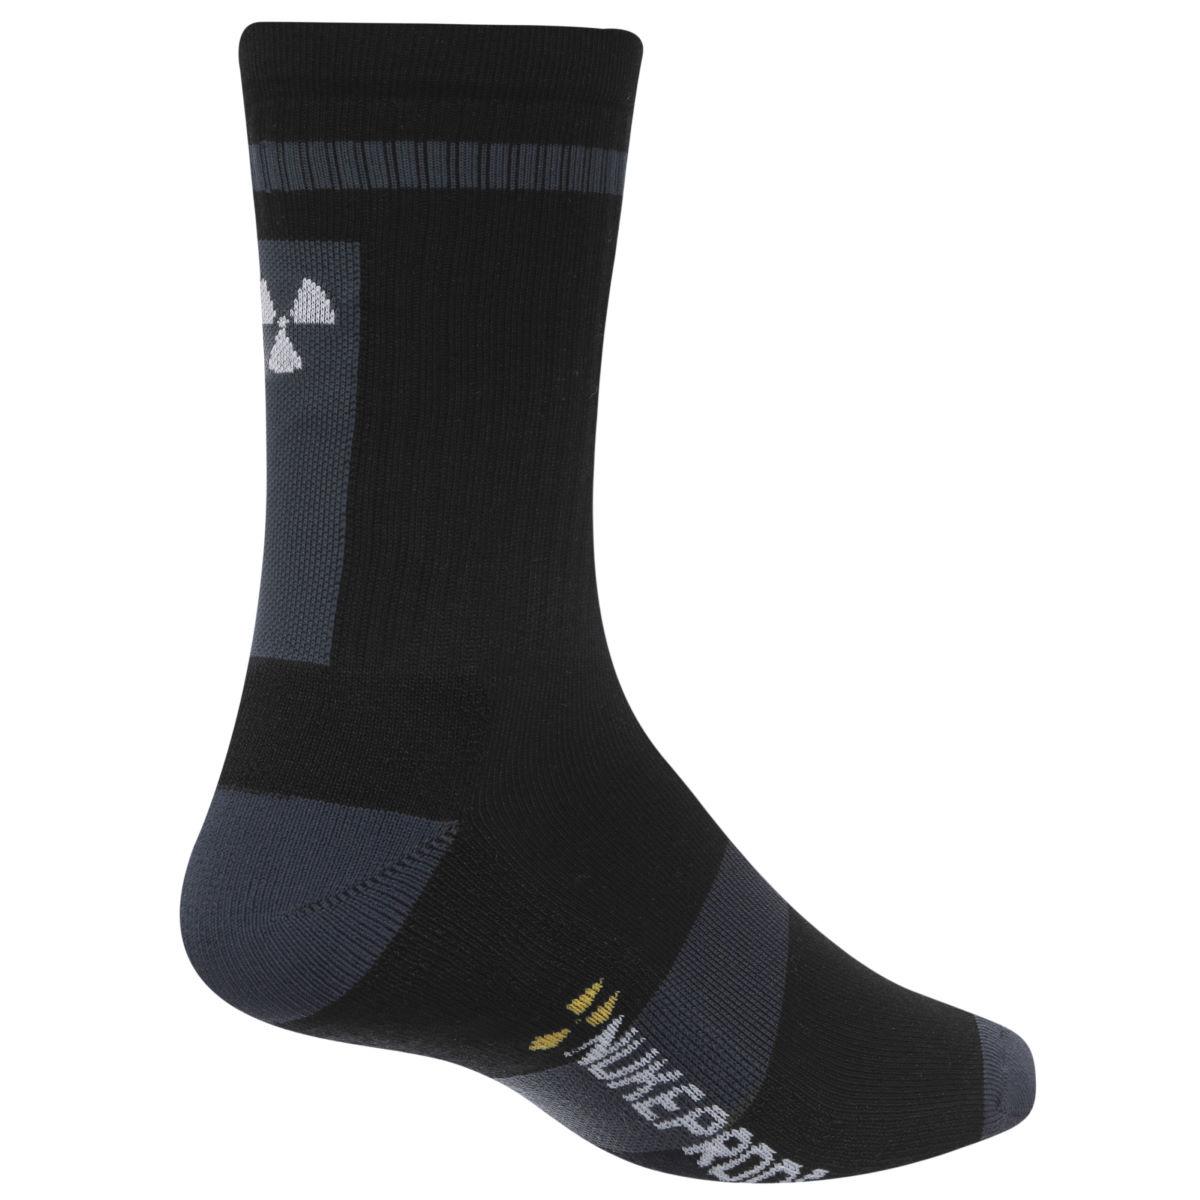 Nukeproof Blackline Sock Black/grey M/l - L/xl Black/grey  Socks